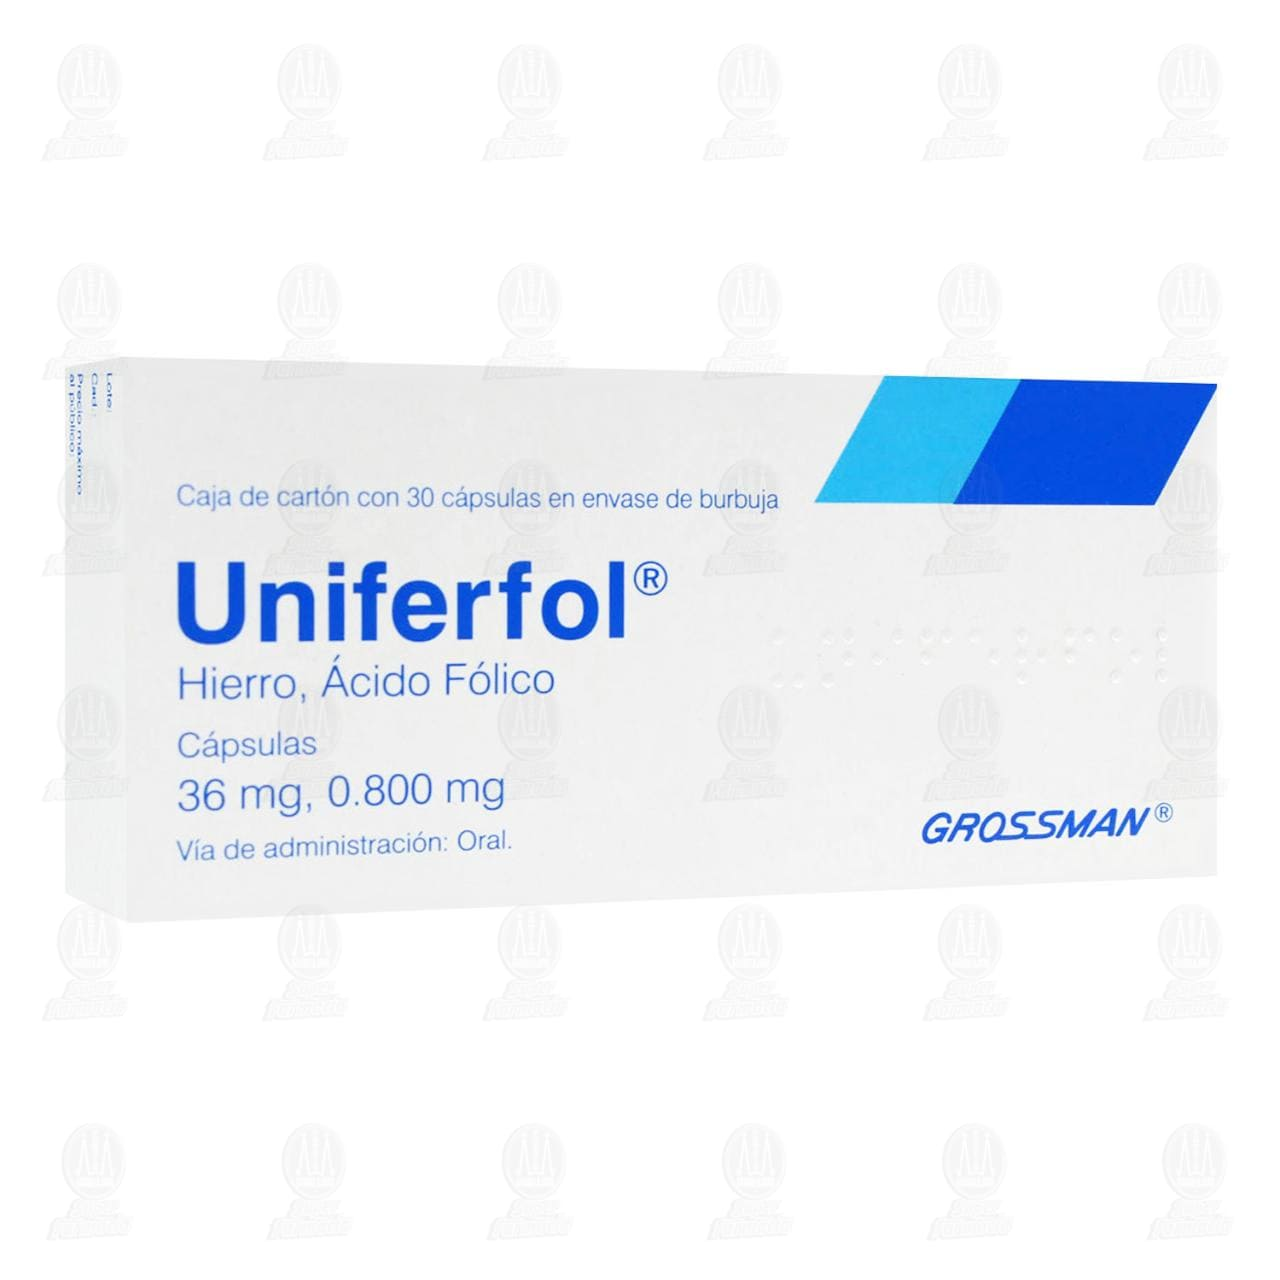 Uniferfol 36mg/0.80mg 30 Cápsulas